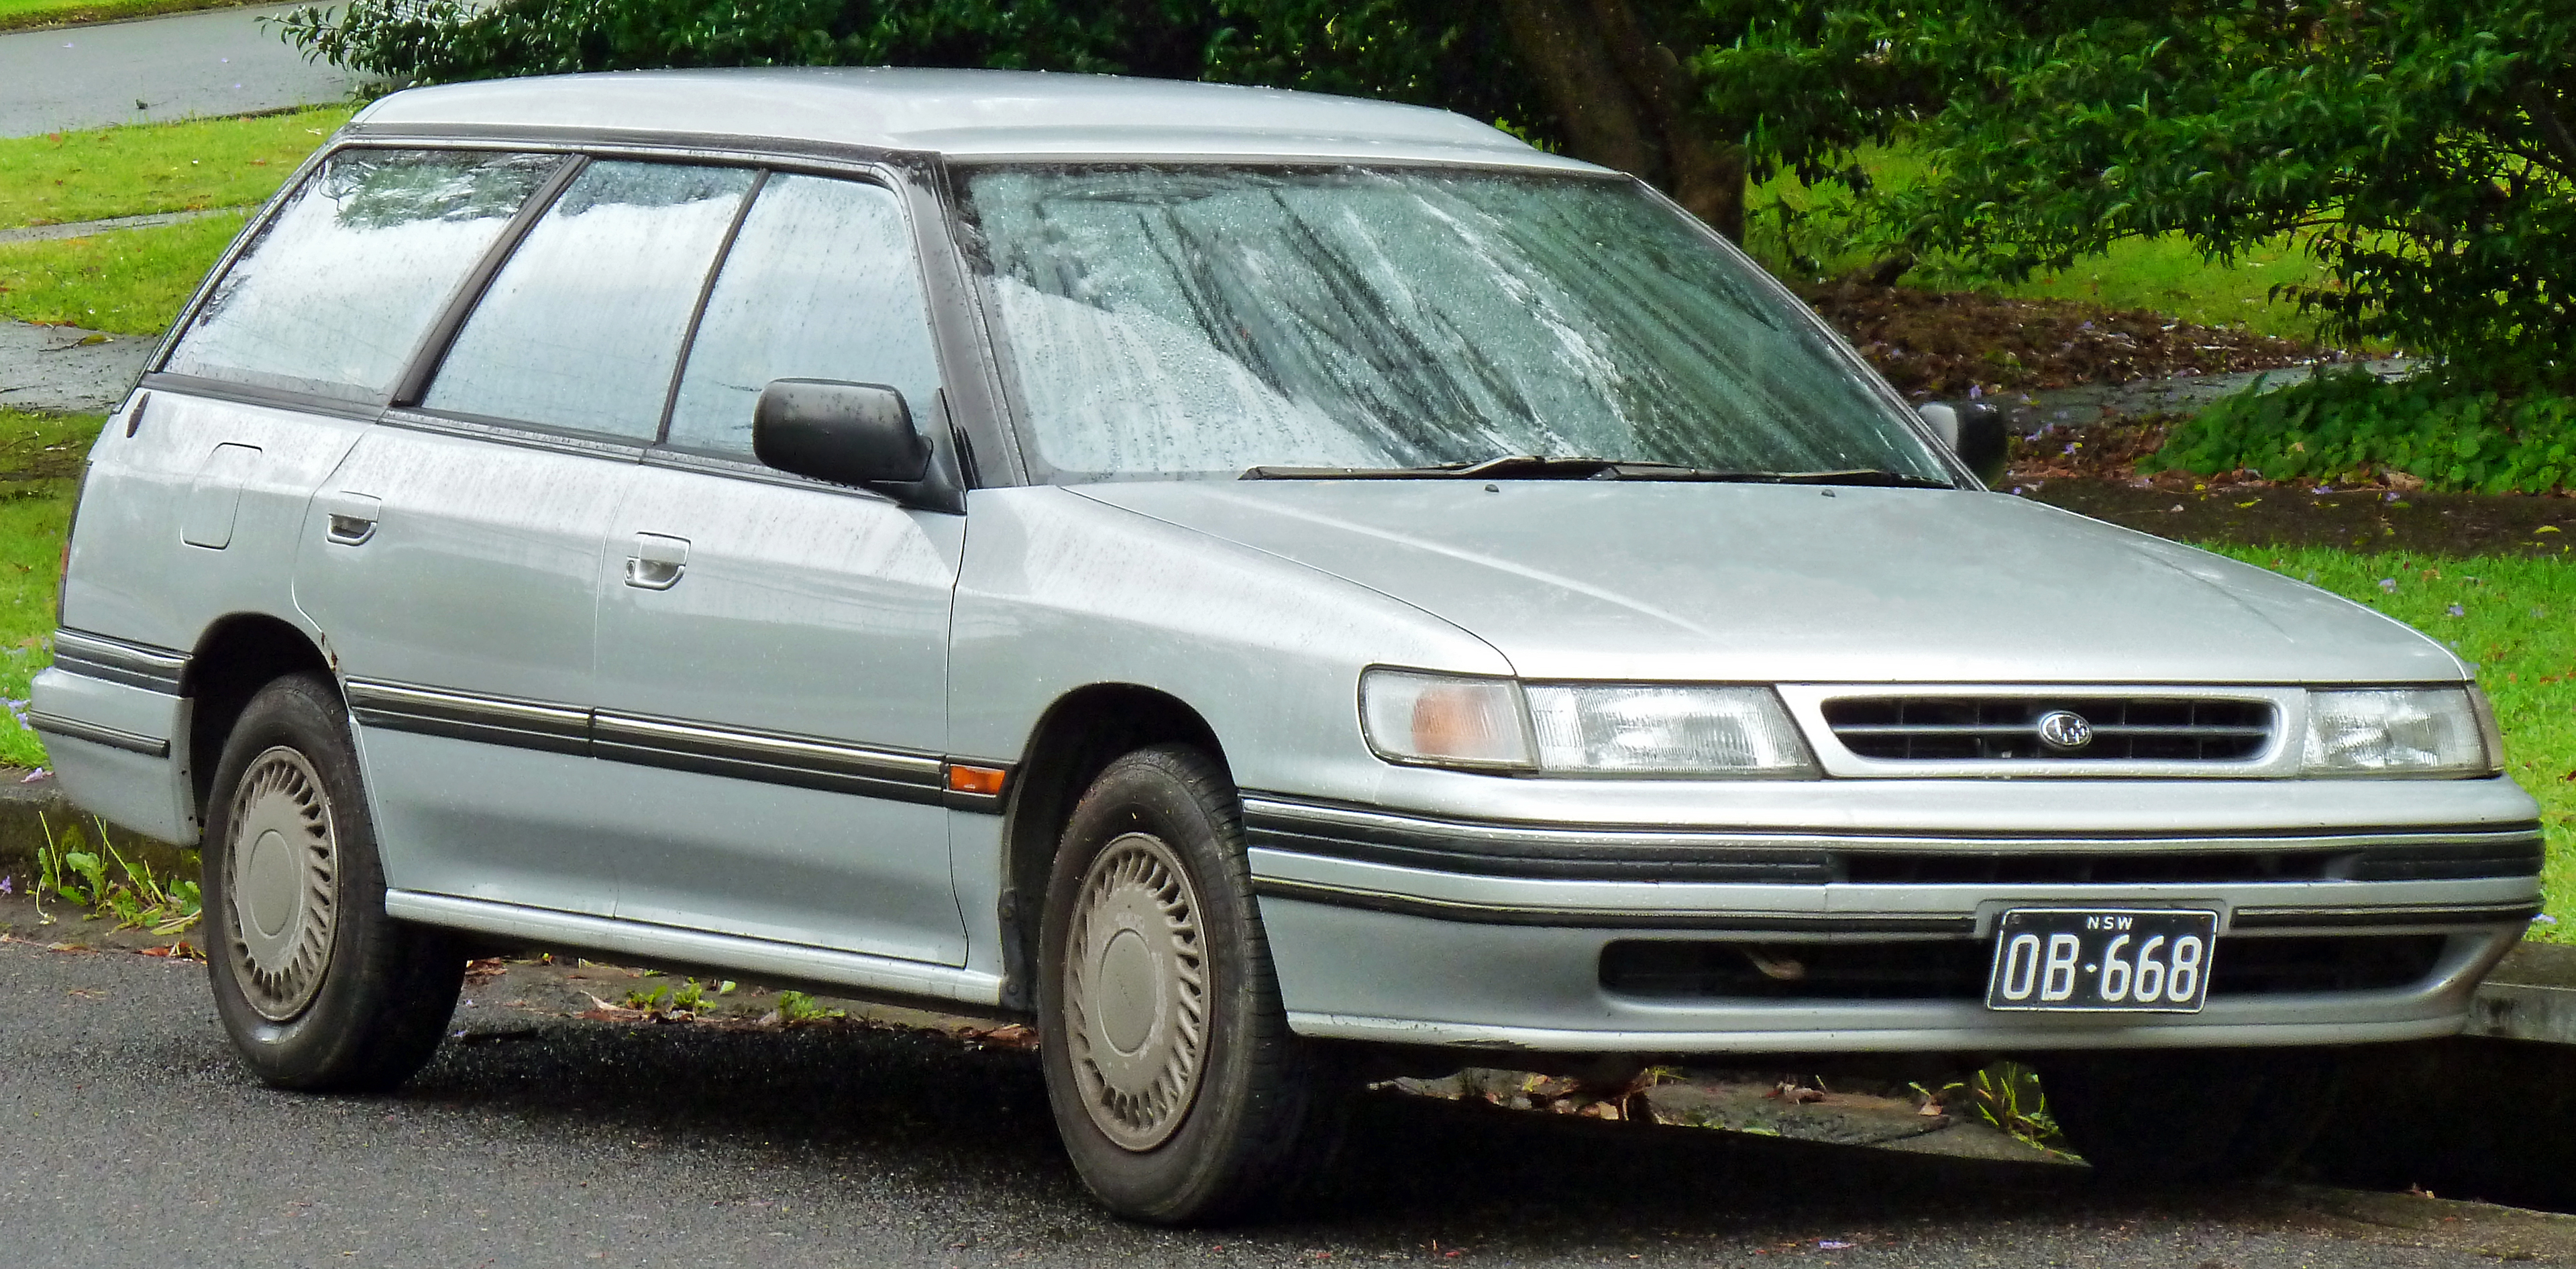 1997 Mitsubishi Galant Viii Station Wagon A4 Pictures Radio Wiring Diagram Pics 8